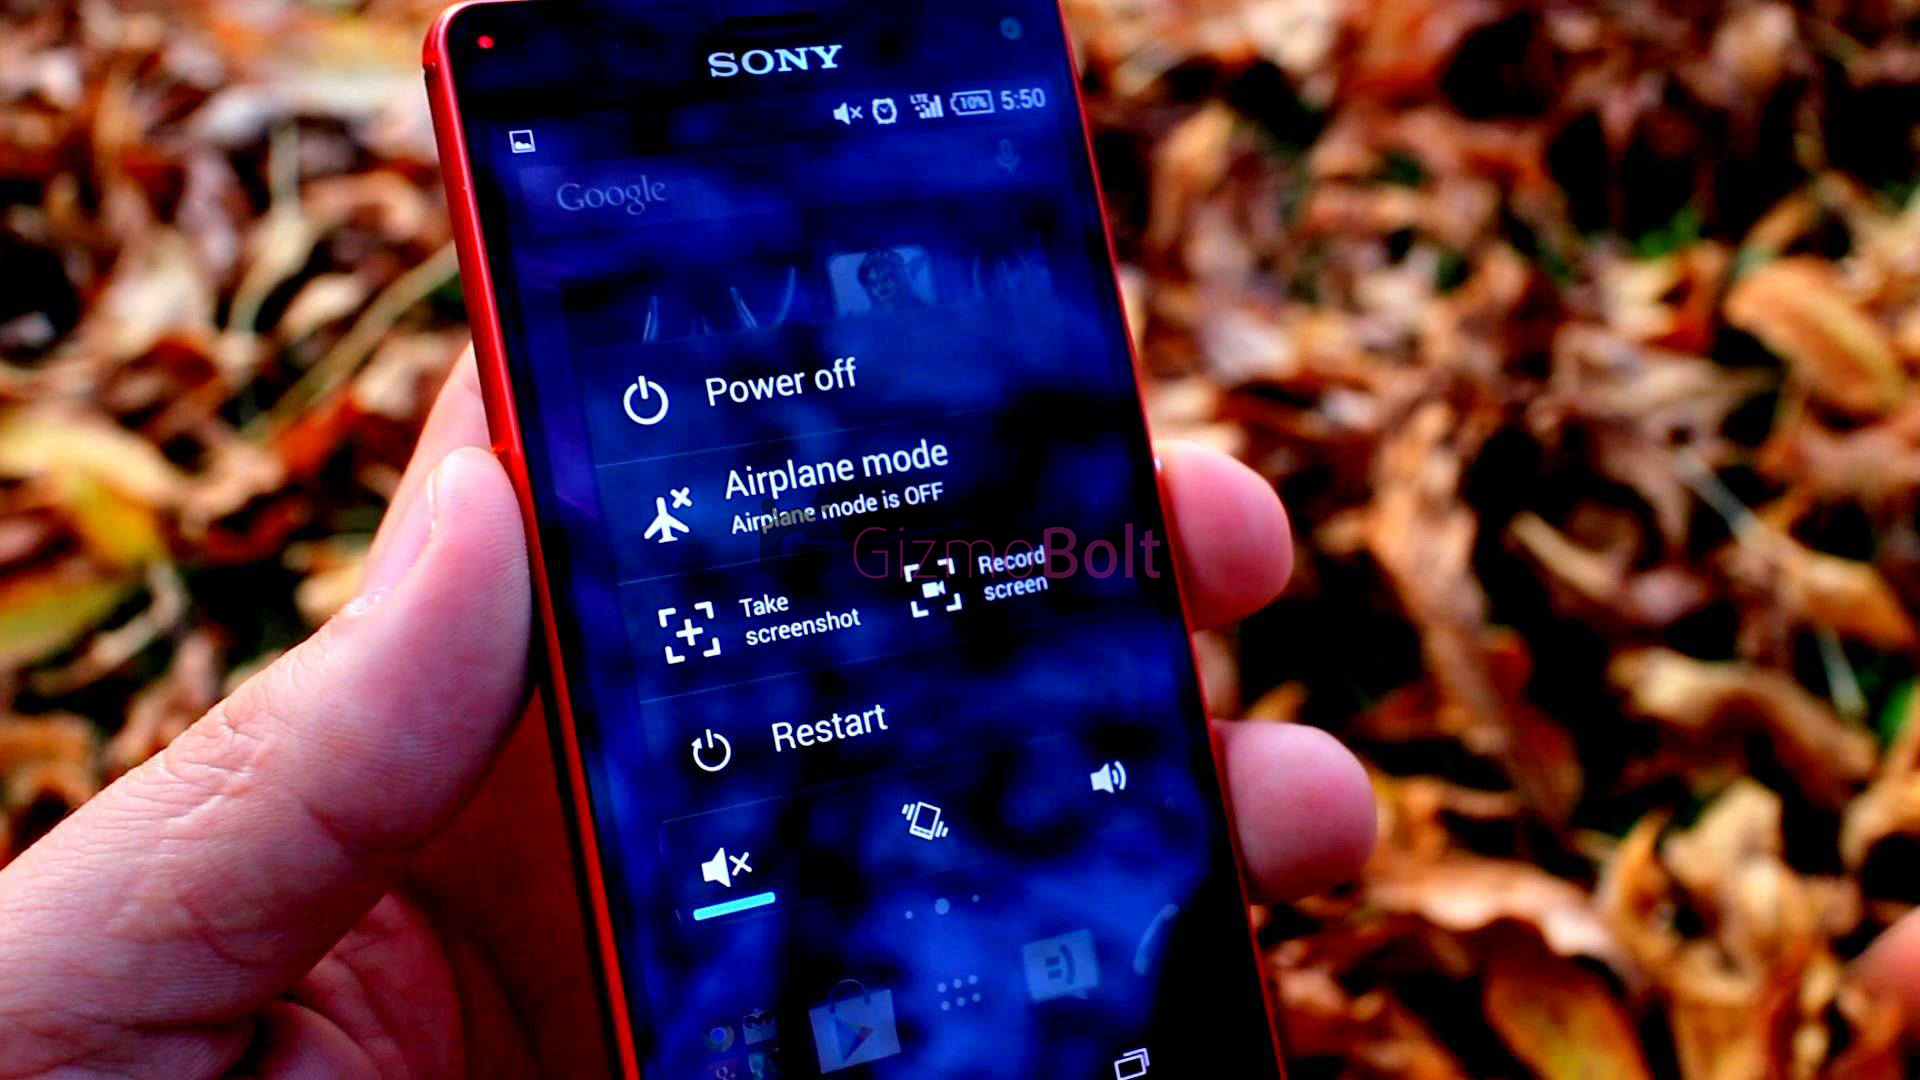 Xperia Z3 Compact Record Screen feature